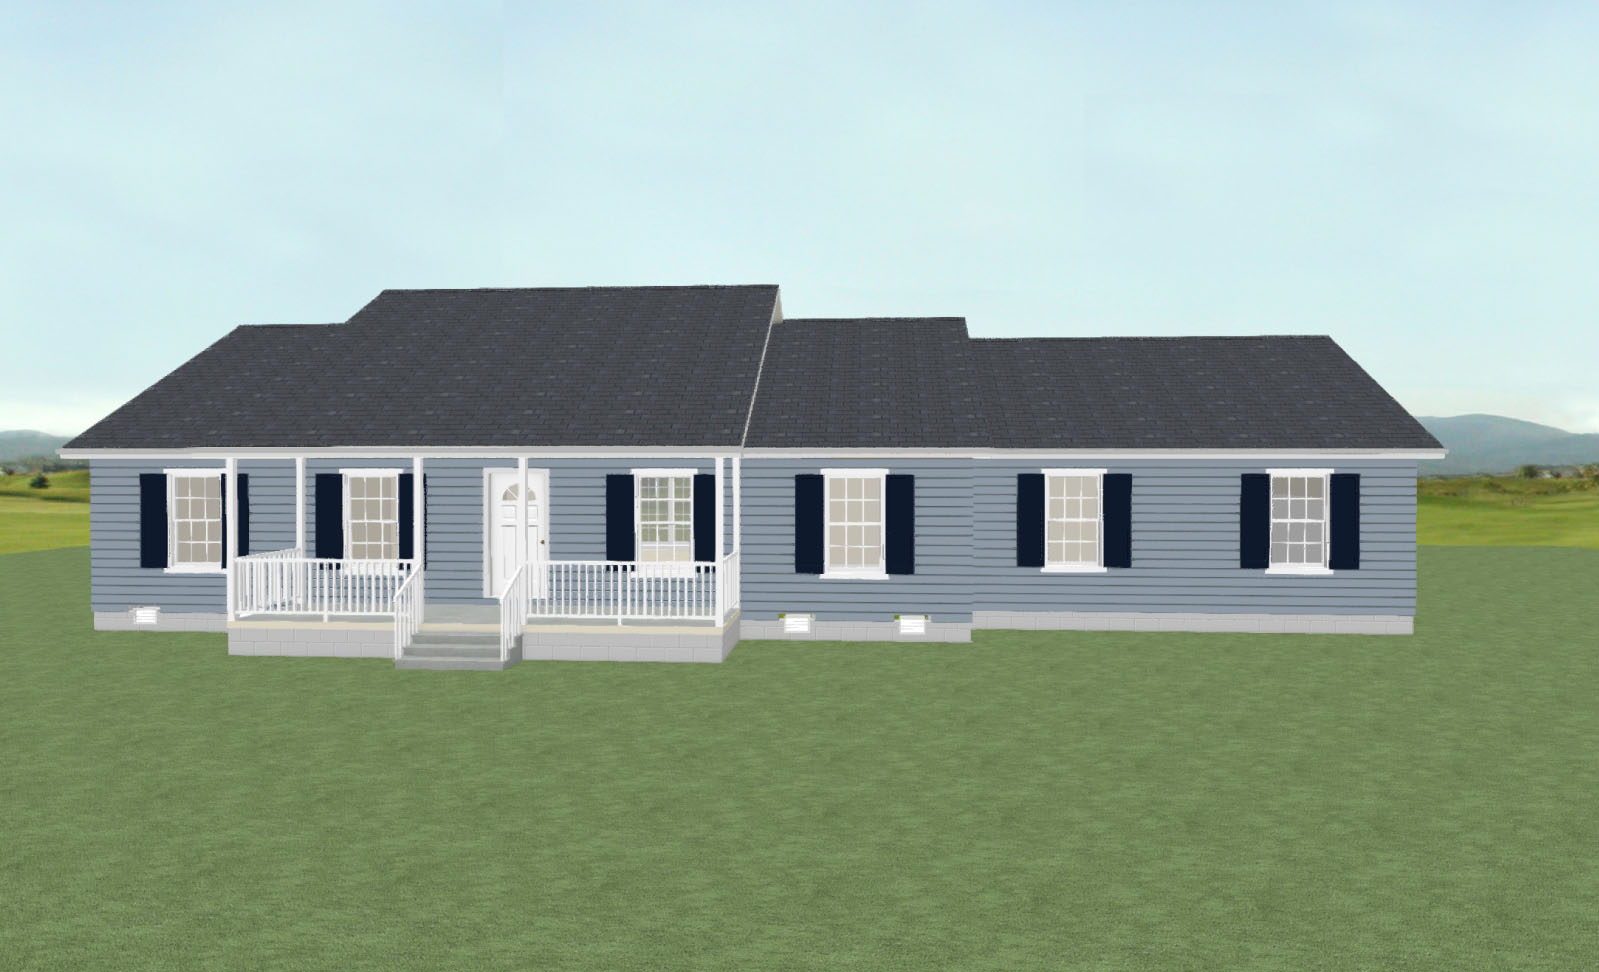 Rendering for the Caroline II floor plan, designed by drafting services at H&H Builders, Inc.